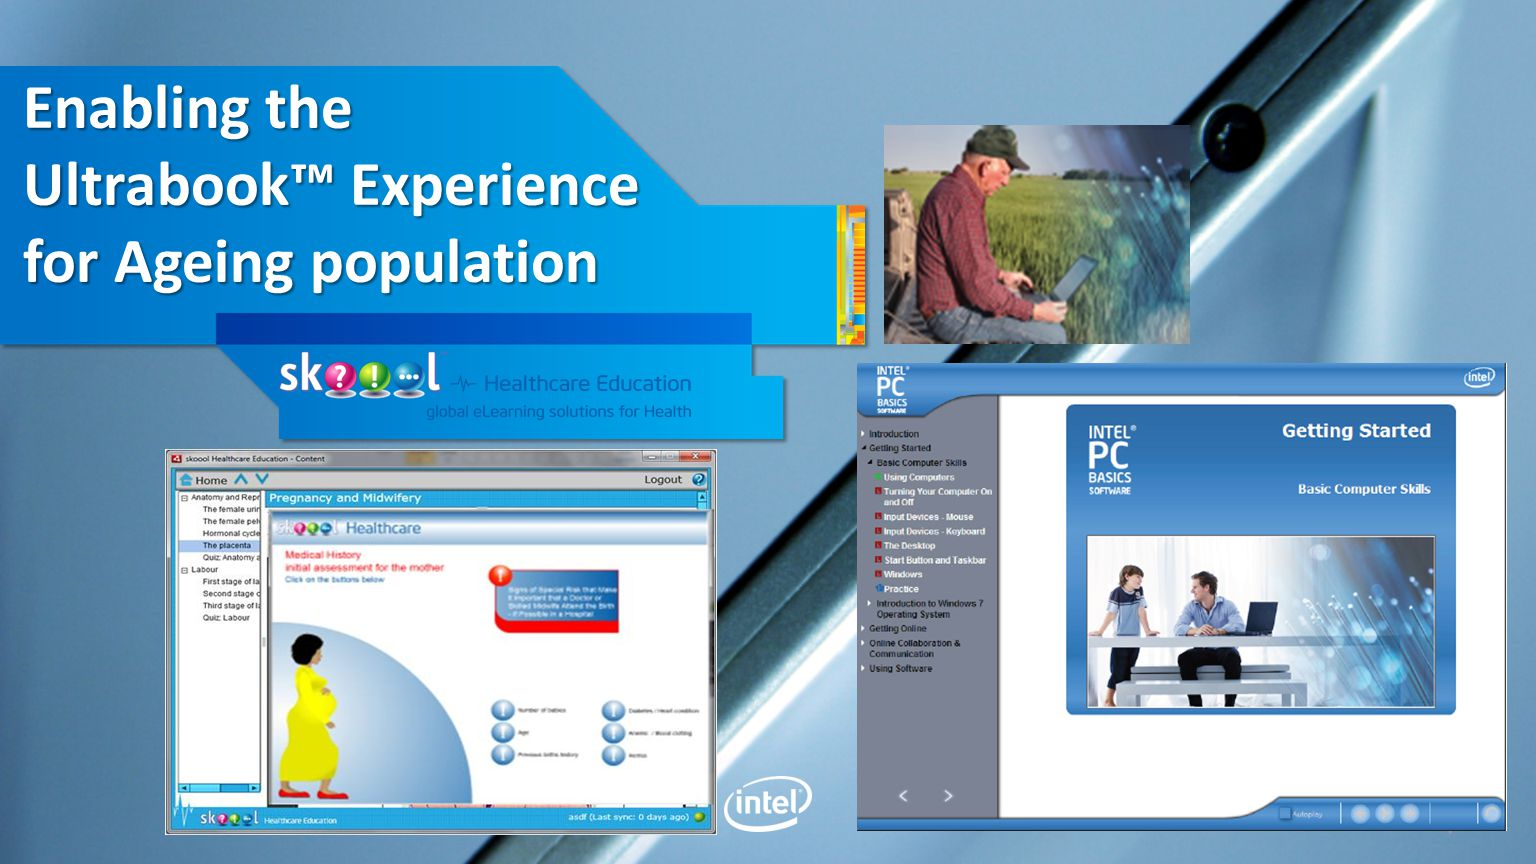 Enabling the Ultrabook™ Experience for Ageing population